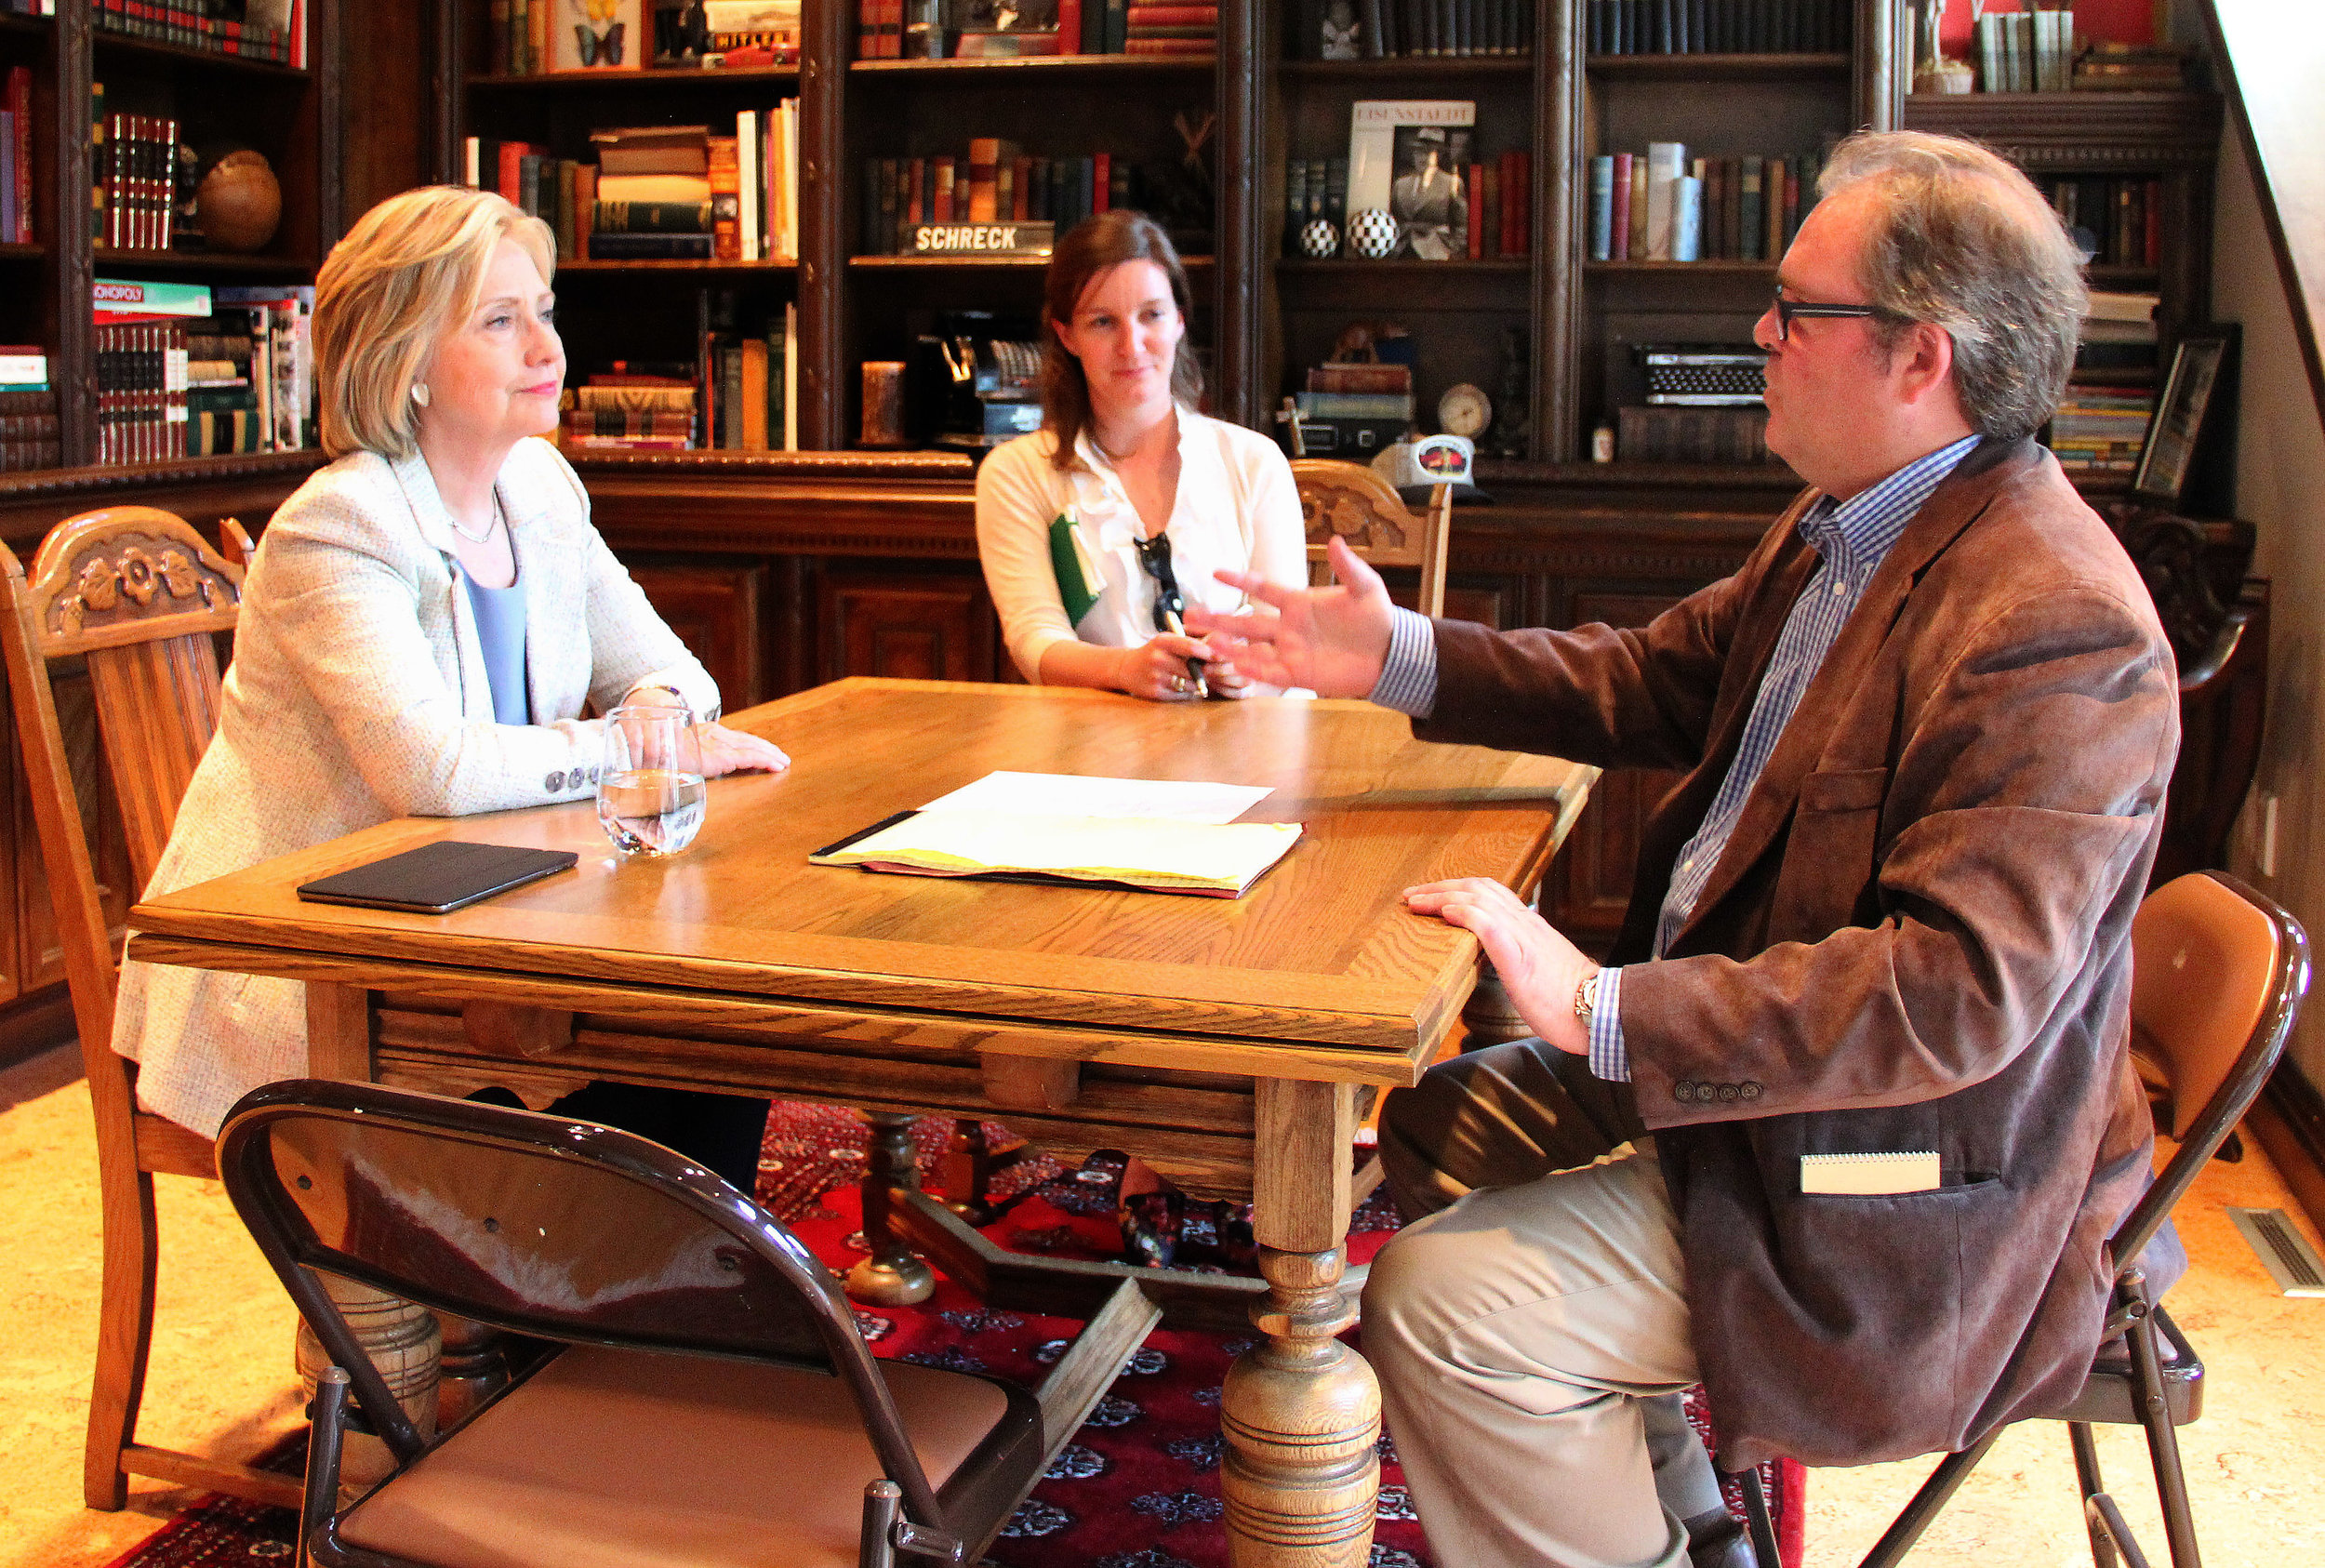 Daily Times Herald Co-owner Douglas Burns interviews 2016 democratic presidential candidate hillary clinton in Carroll, iowa at the home of dr. steve Kraus.